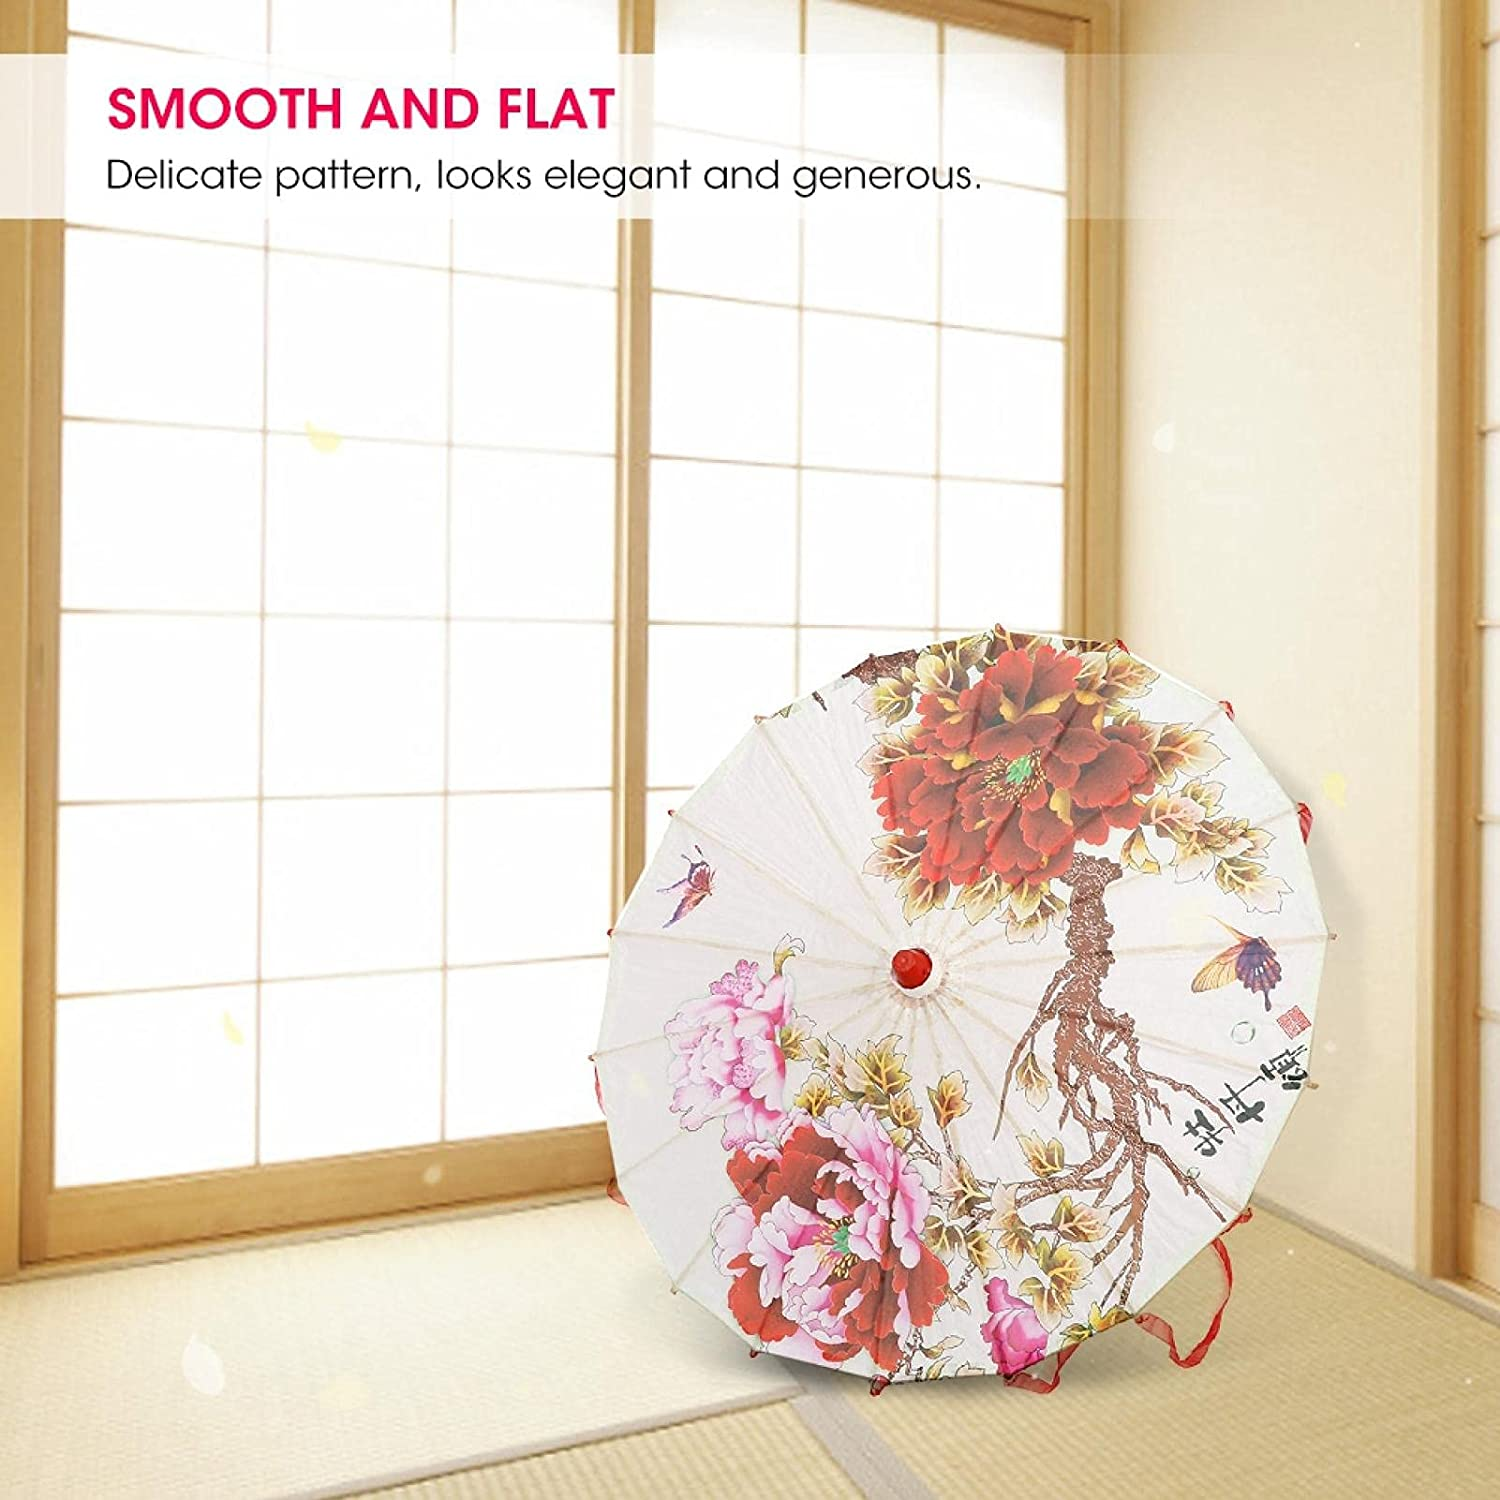 Pwshymi Oiled Paper Umbrella Wood New mail order 67% OFF of fixed price intage Parasol Prop Perform Ar